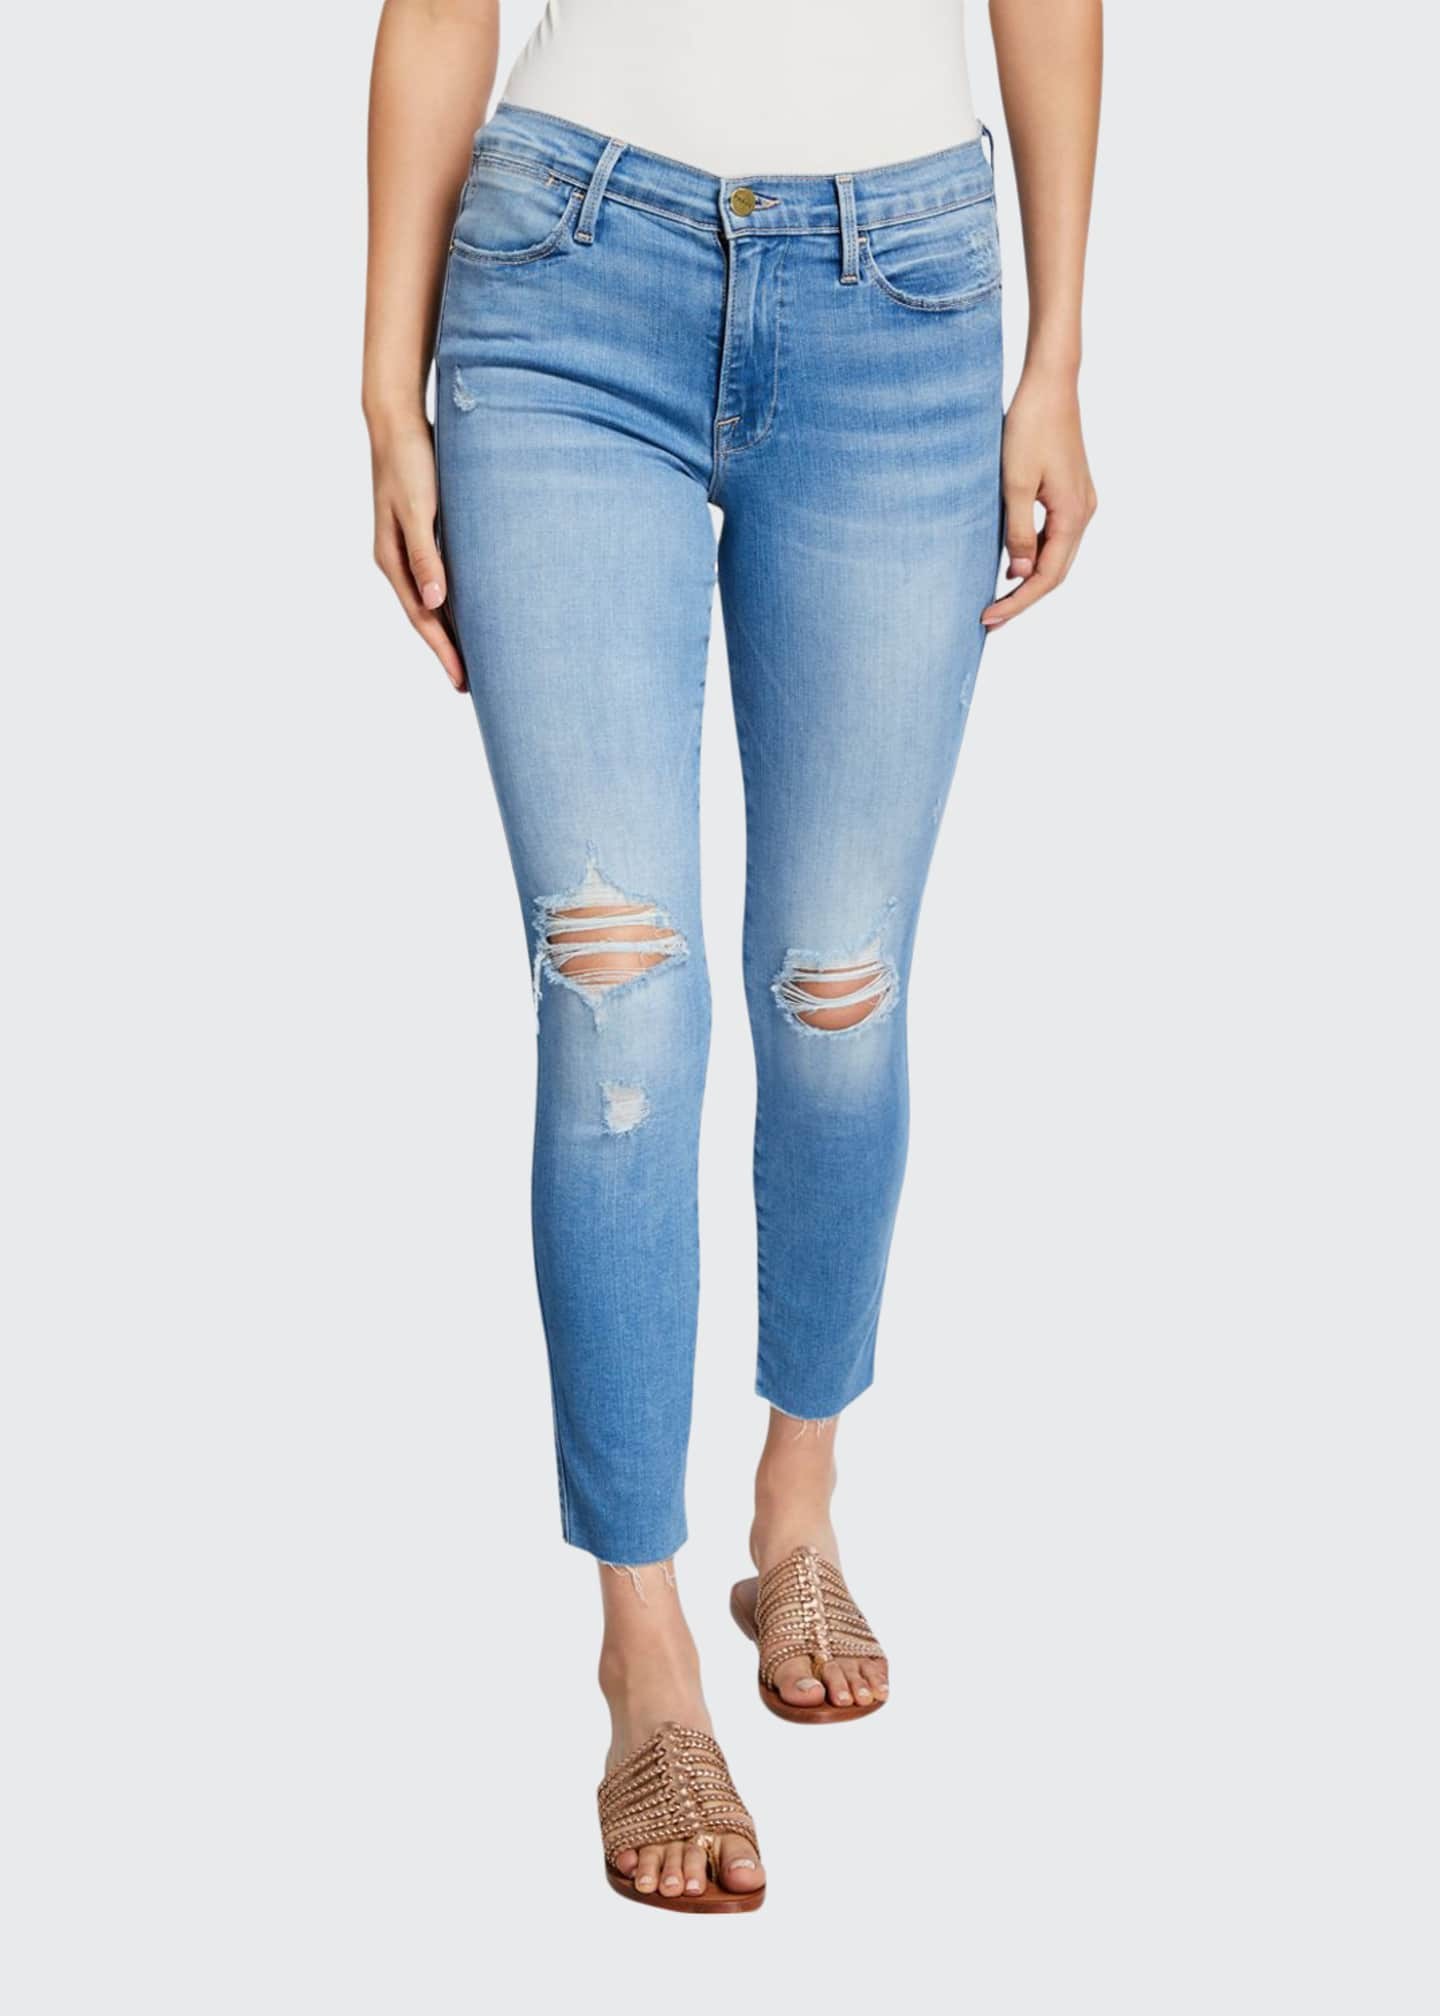 FRAME Le High Skinny Crop Double-Needle Raw-Edge Jeans